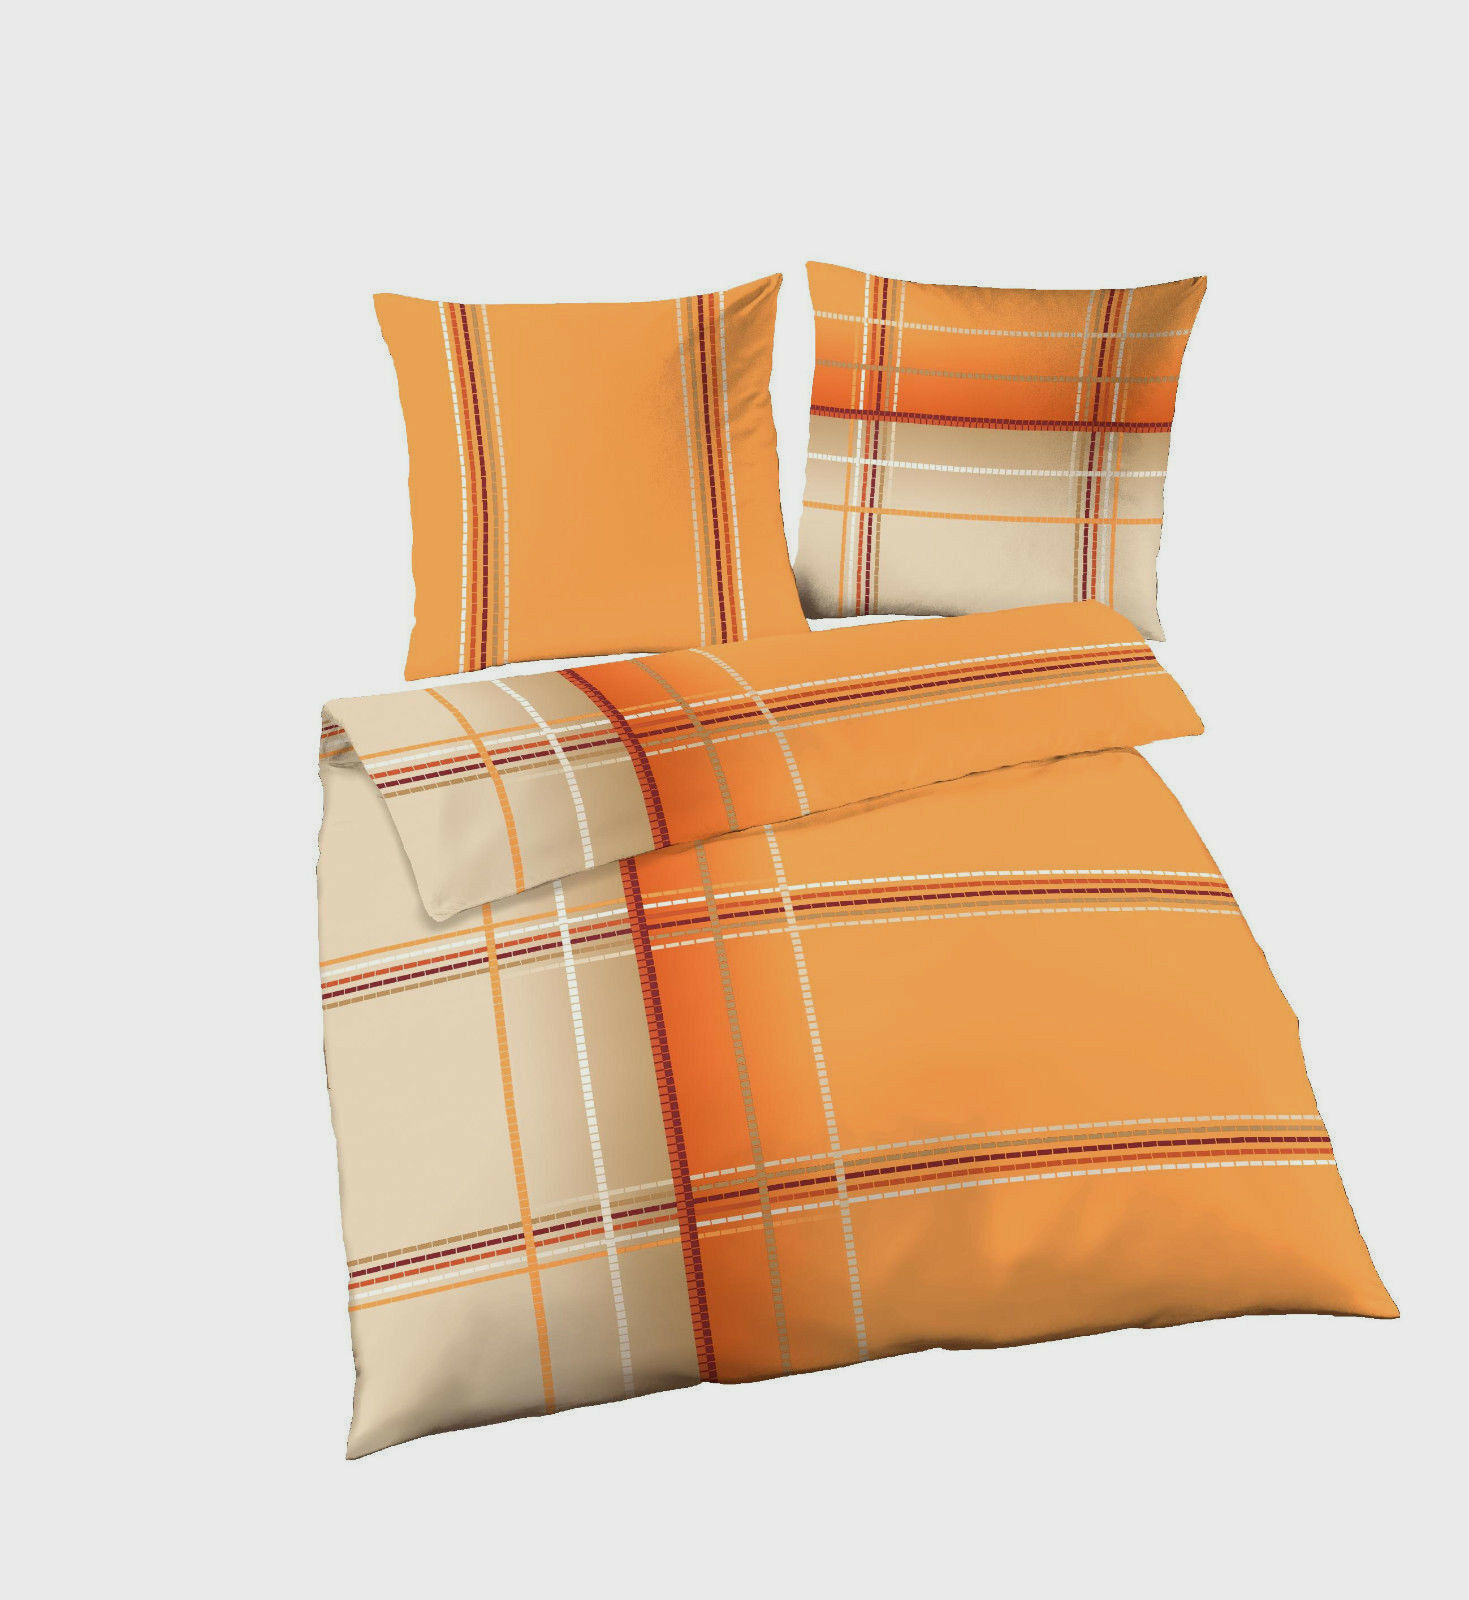 bettw sche 200x200 cm streifen 47669 orange b ware biber eur 19 95 picclick de. Black Bedroom Furniture Sets. Home Design Ideas